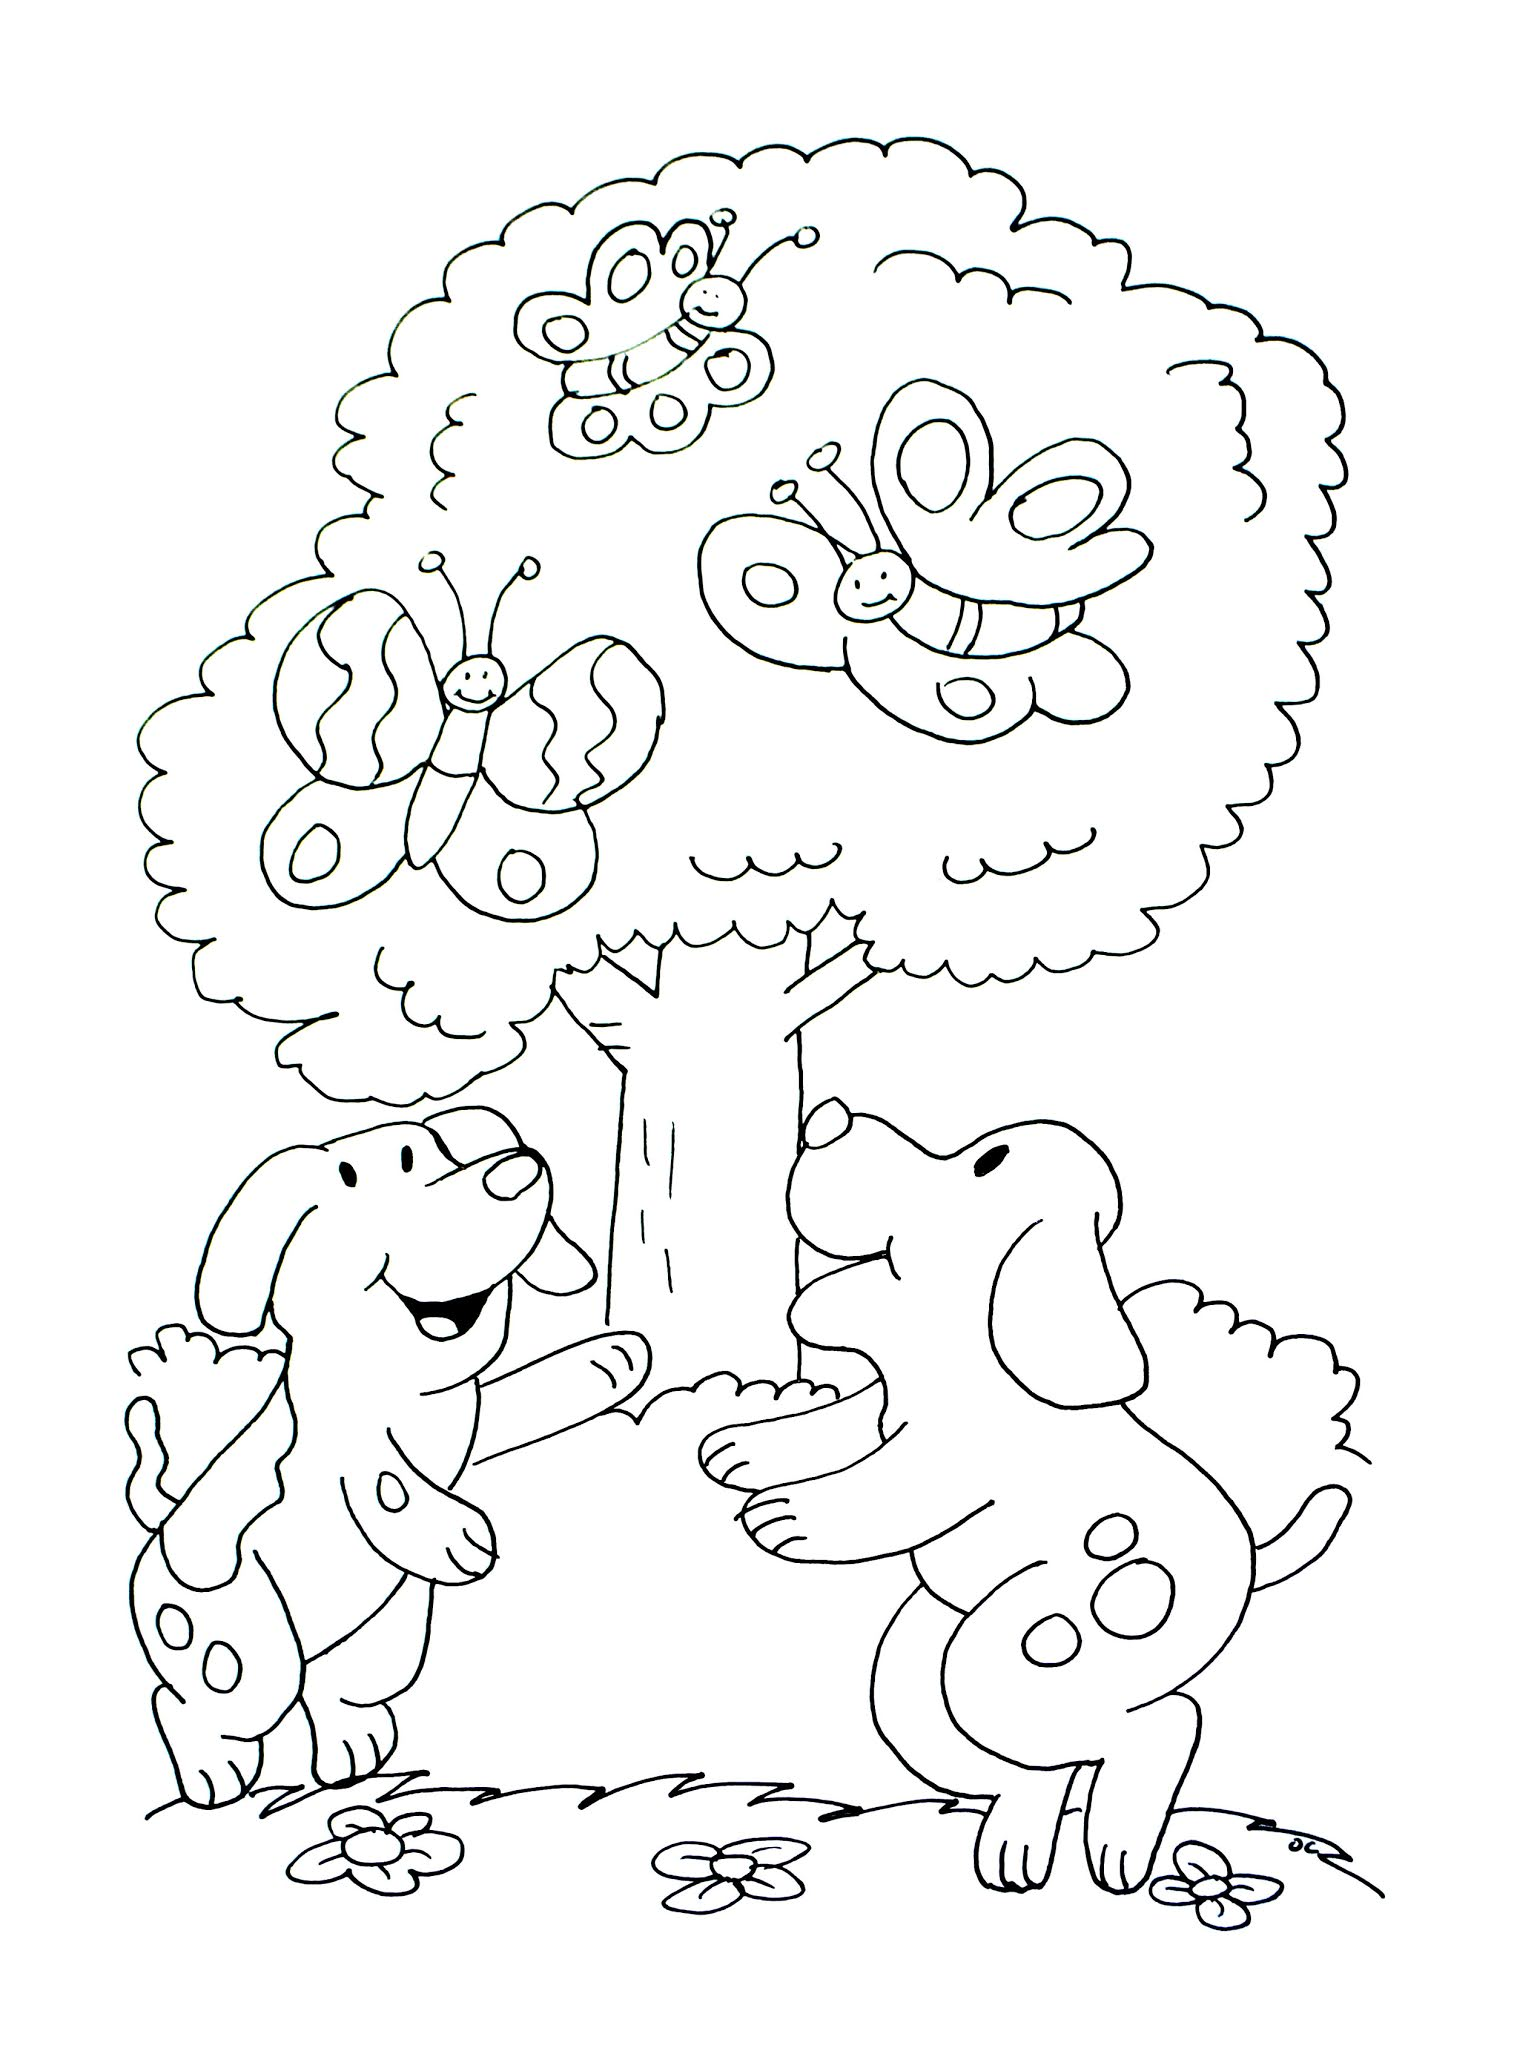 Dogs coloring pages 61